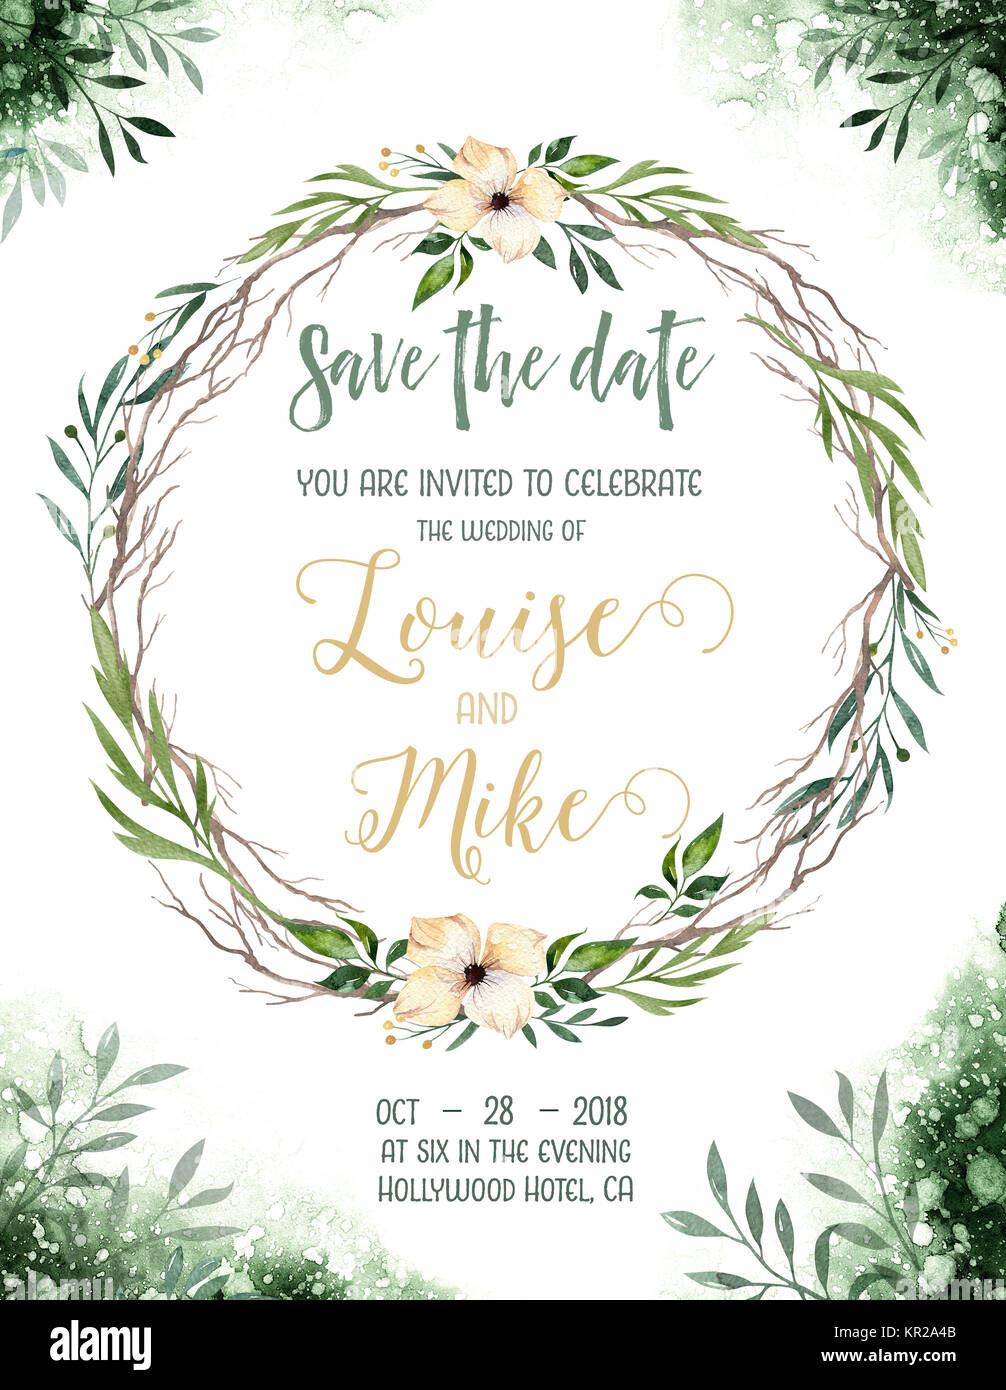 Watercolor greenery color wedding invitation card with green and